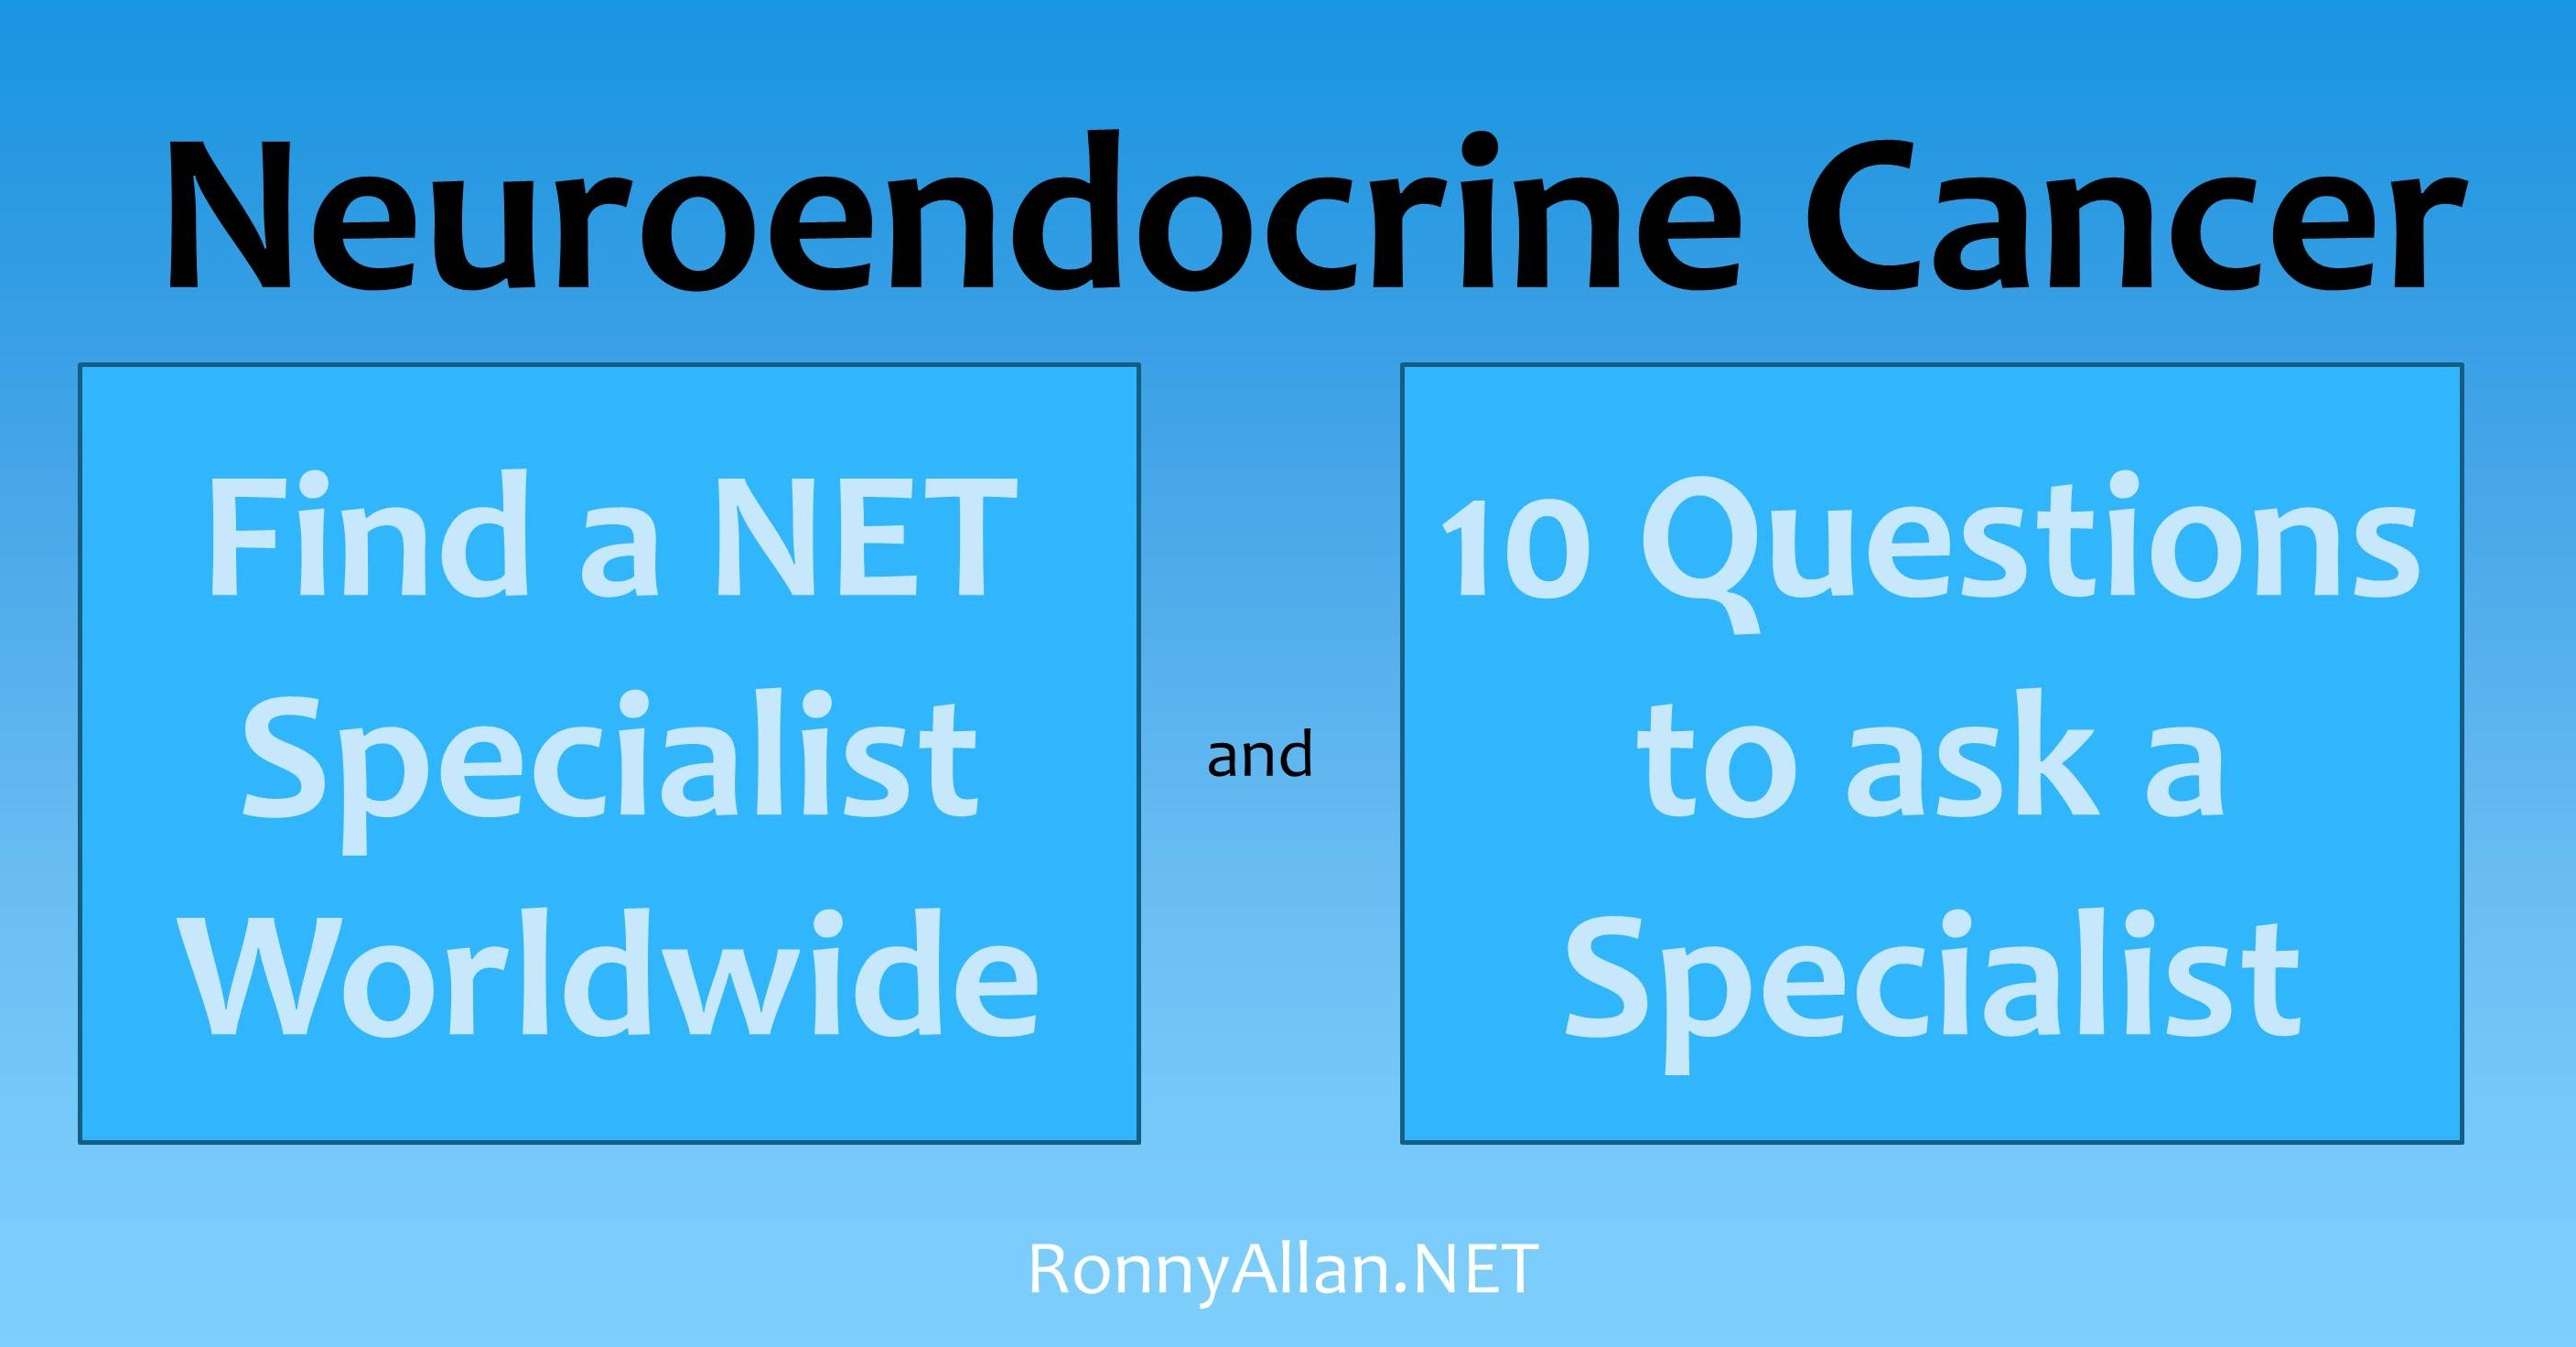 neuroendocrine cancer can be cured